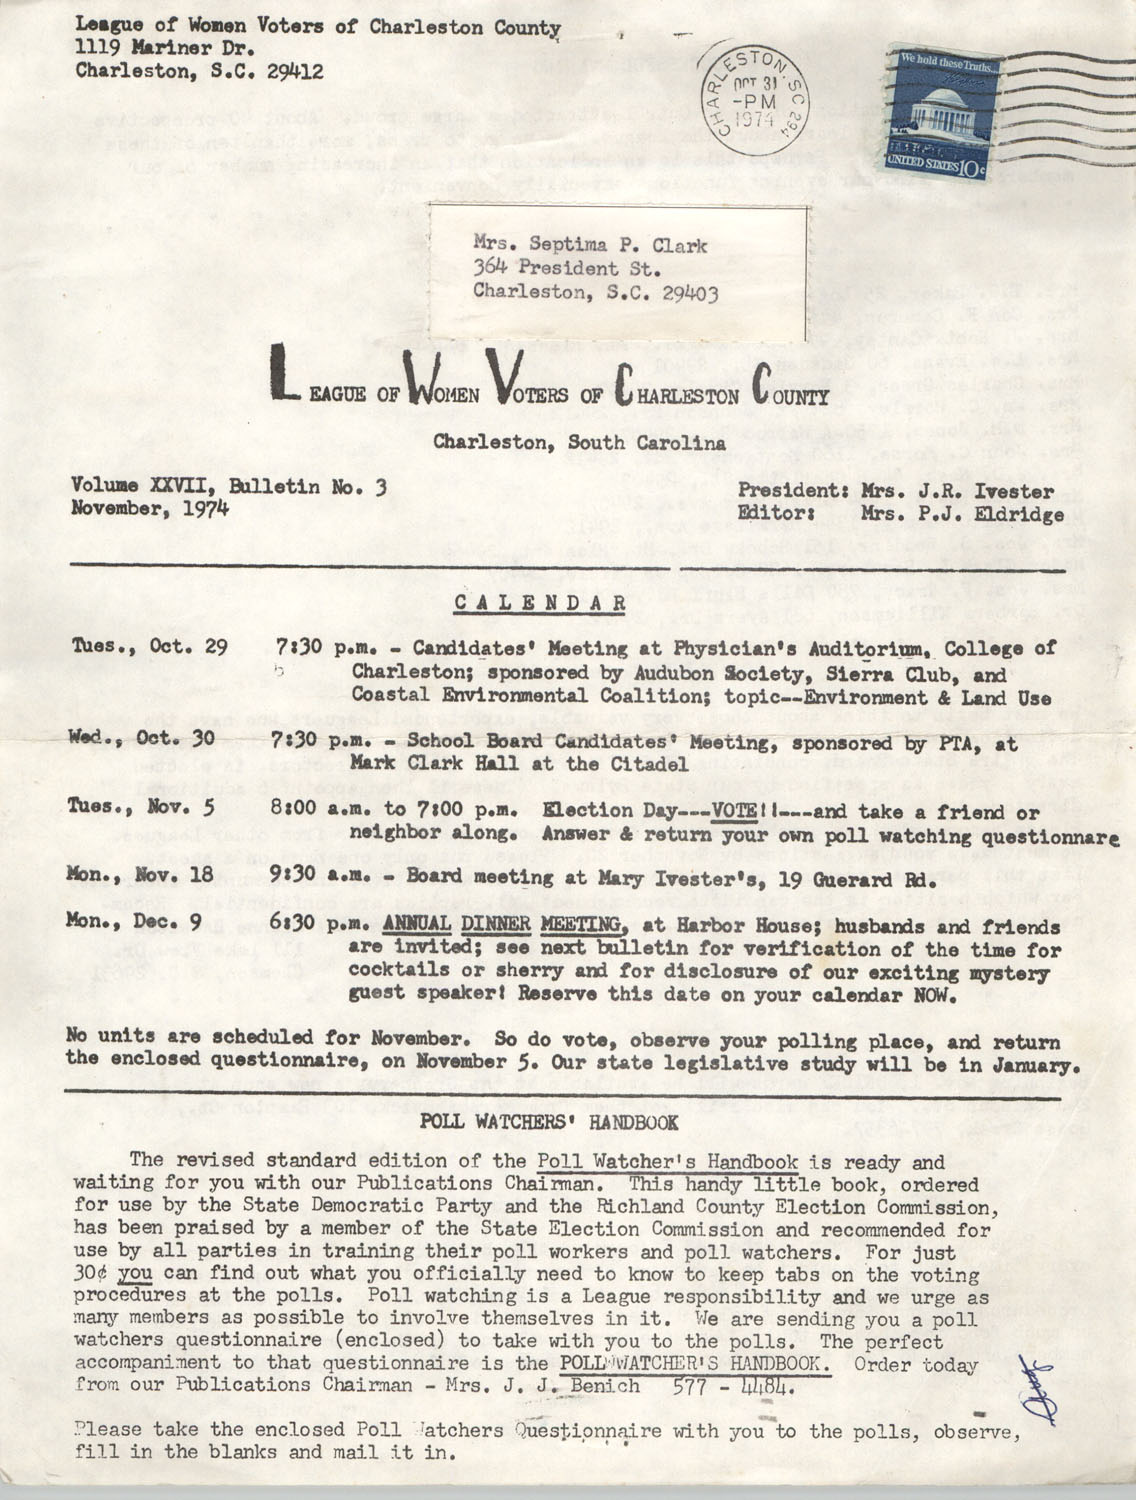 League of Women Voters of Charleston County, Volume XXVII, Bulletin No. 3, November 1974